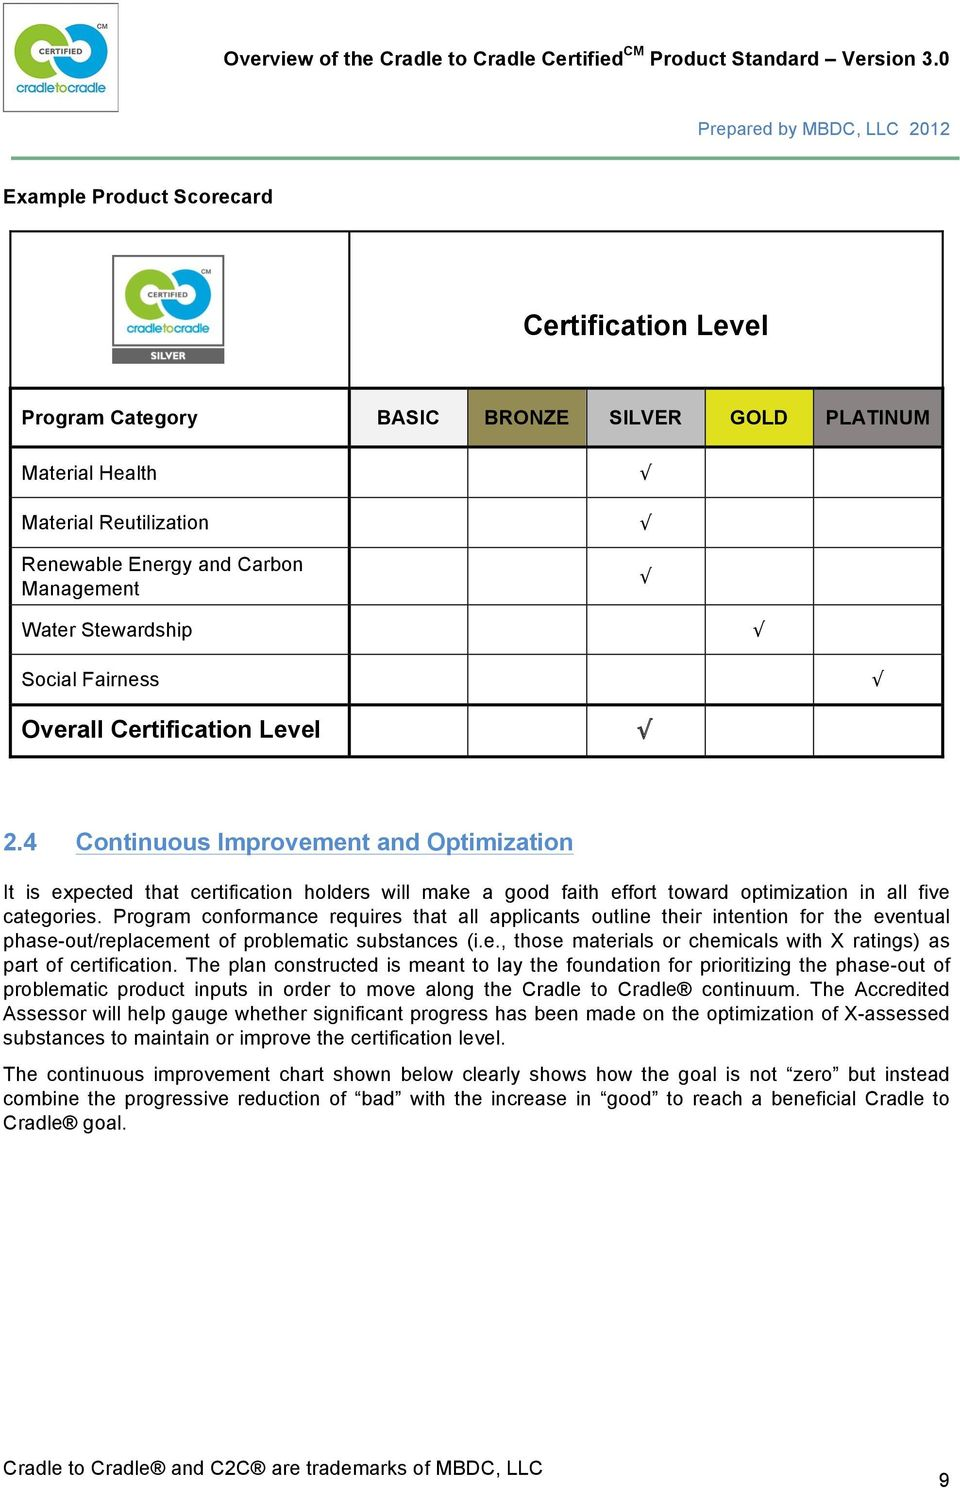 Program conformance requires that all applicants outline their intention for the eventual phase-out/replacement of problematic substances (i.e., those materials or chemicals with X ratings) as part of certification.